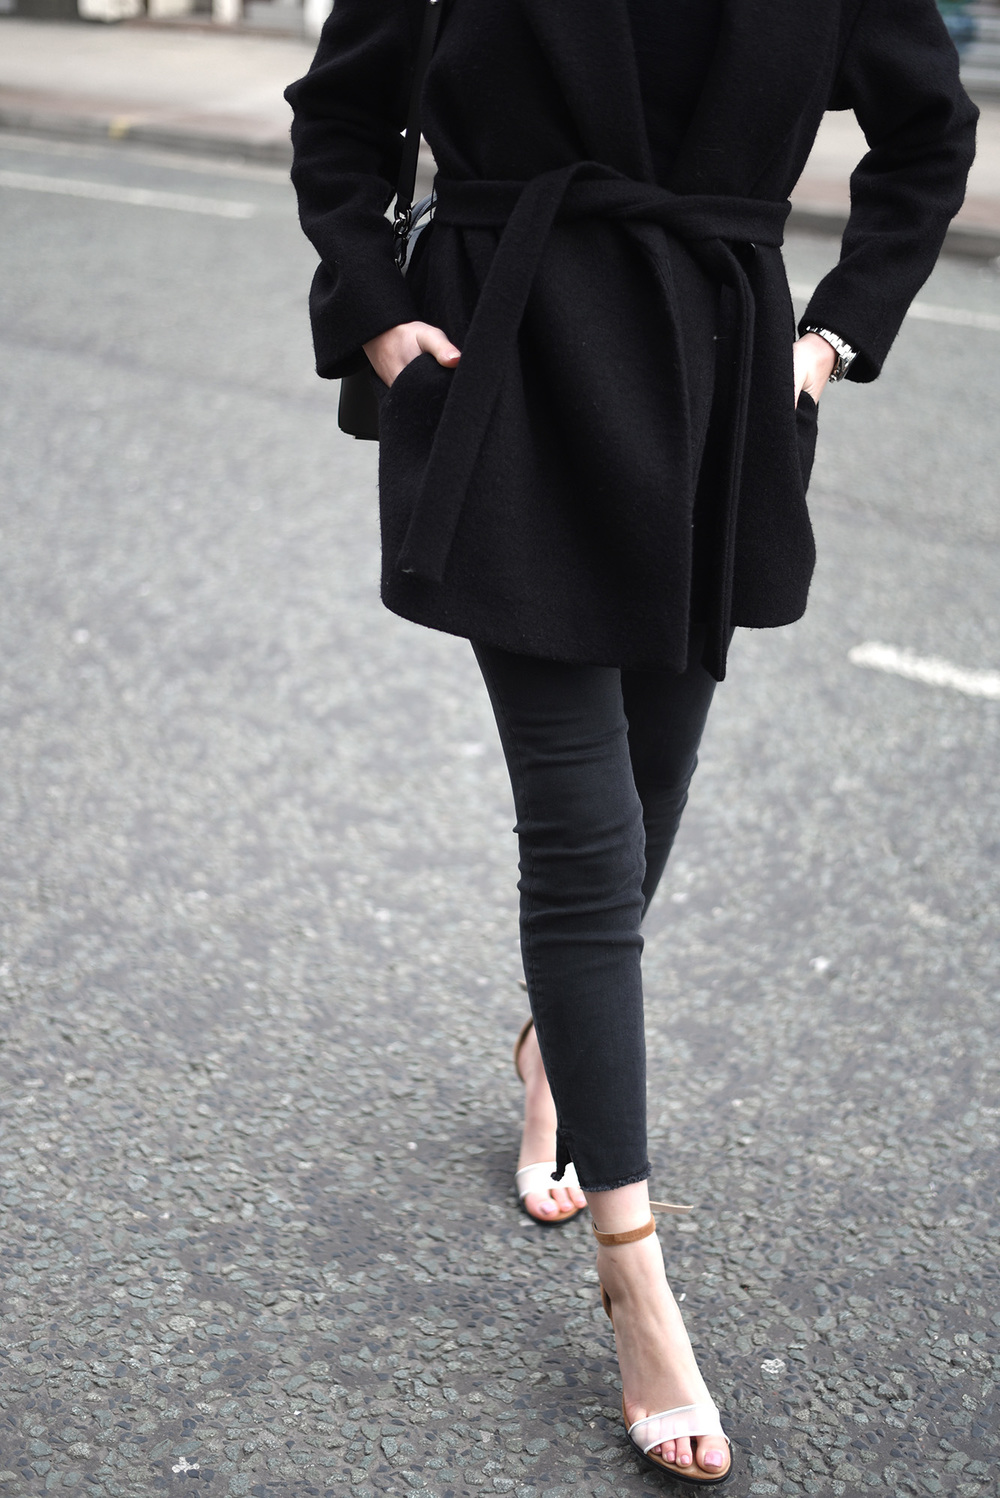 Minimal Fashion Blogger Shot From The Street